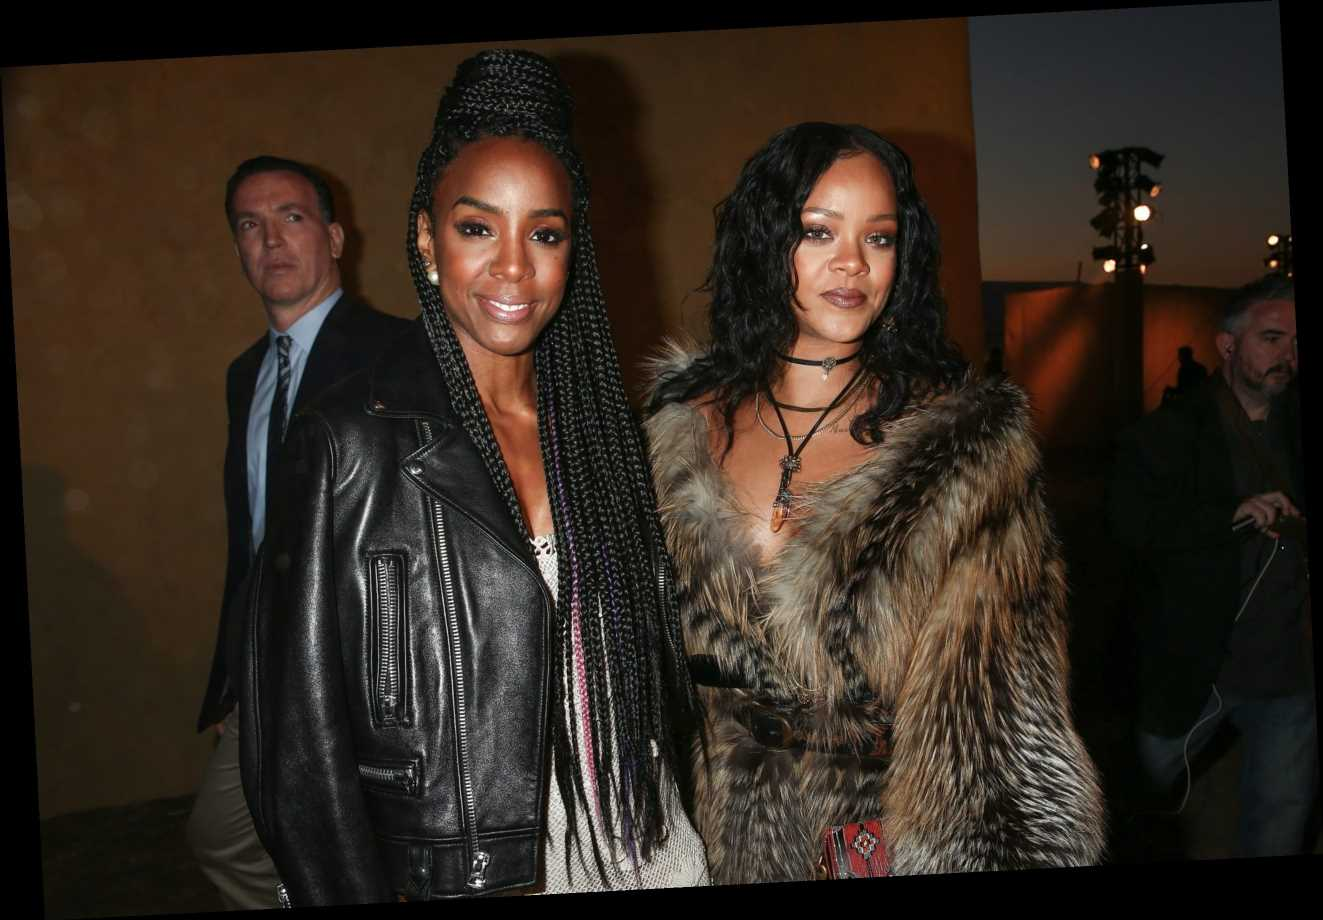 The Hilarious Way Rihanna Unknowingly Helped Kelly Rowland With Parenting Duties